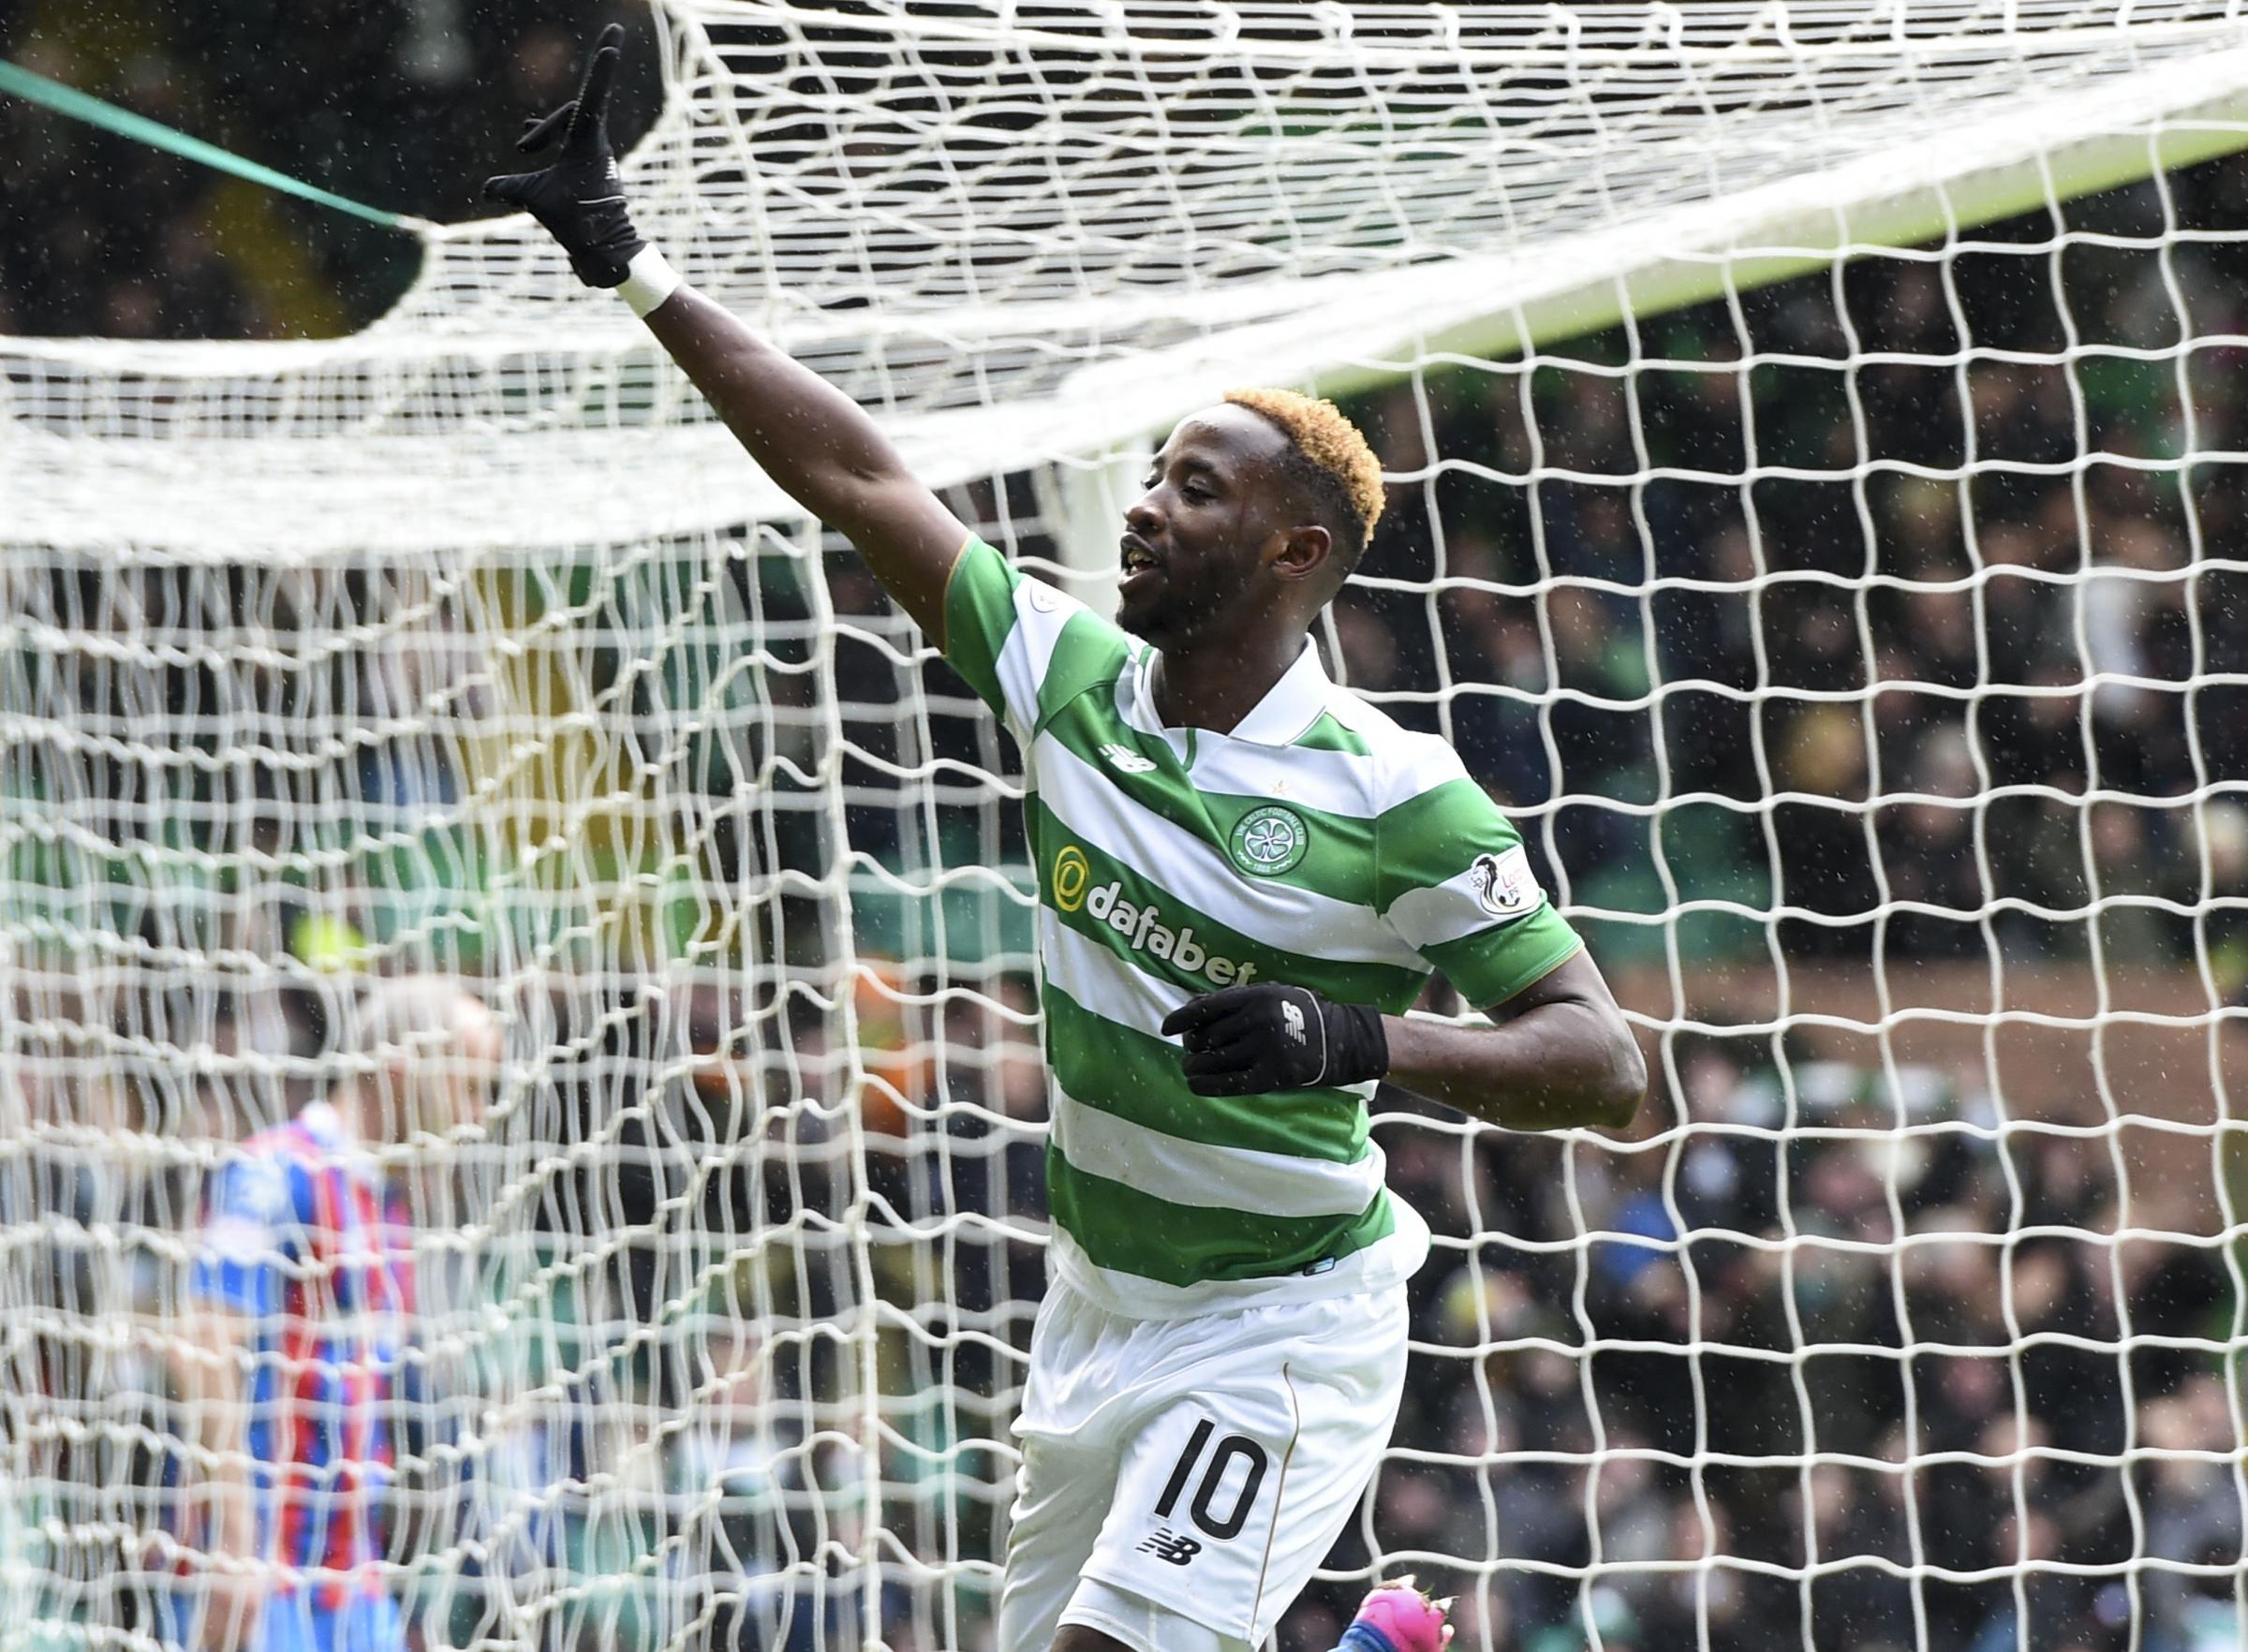 Celtic 2 Motherwell 0: First half strikes keep Hoops rolling on